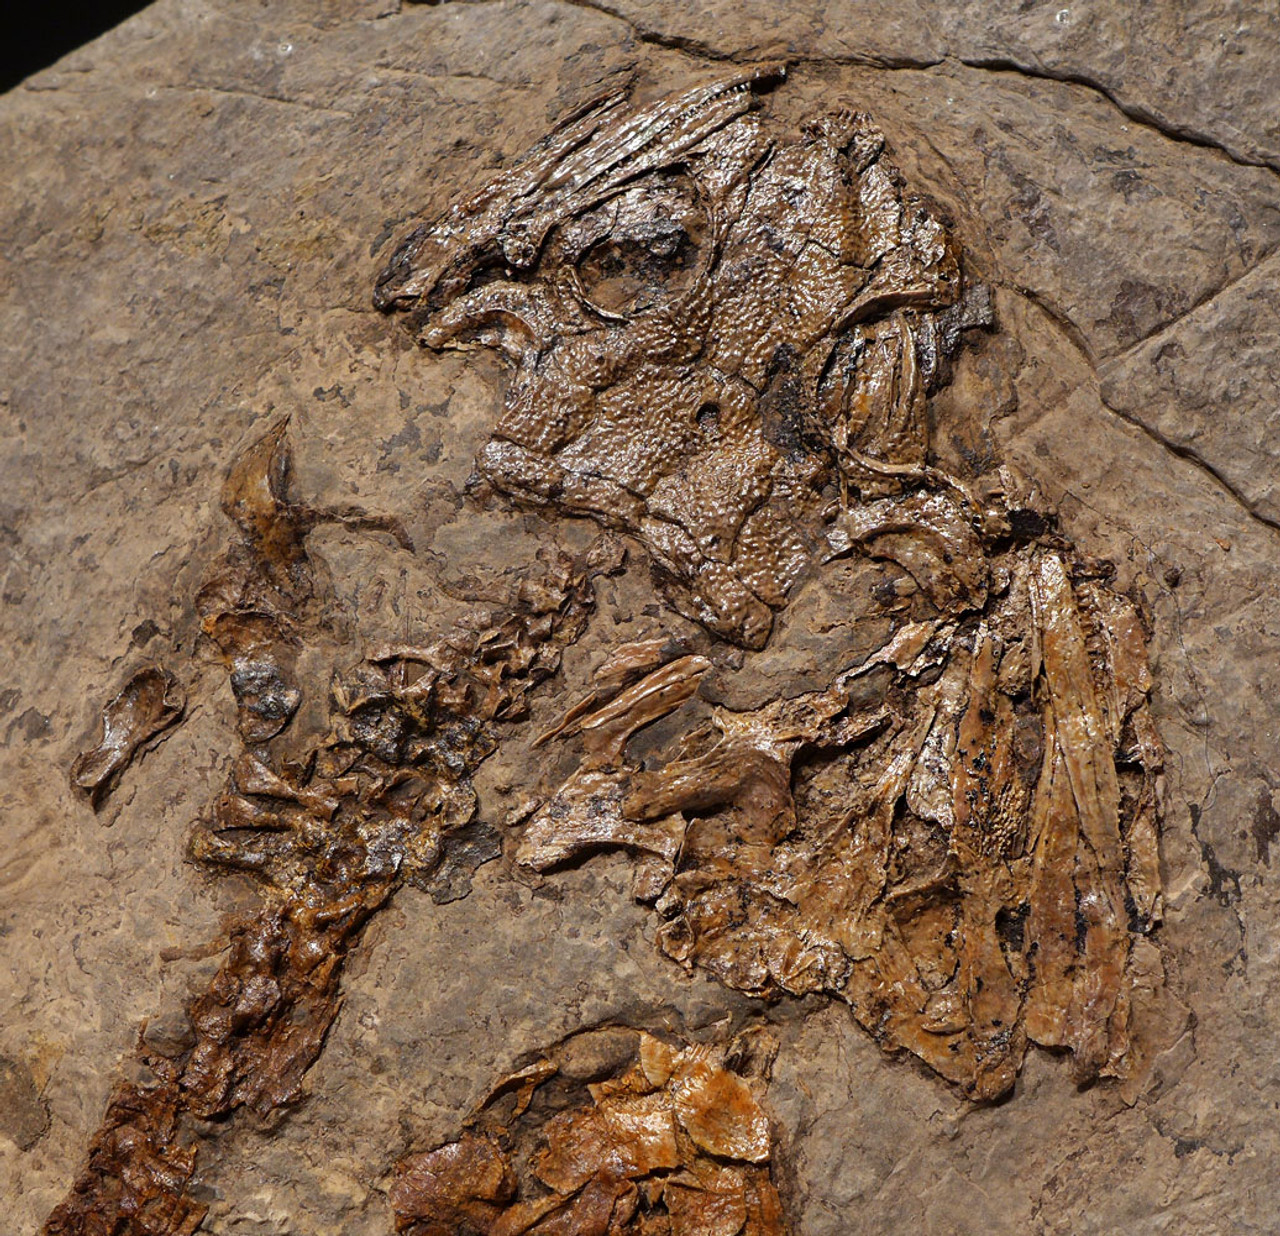 AMPH051 - SUPER RARE NATURAL GROUP OF LARGE LETOVERPETON AMPHIBIAN FOSSIL ON SHALE FROM THE PERMIAN